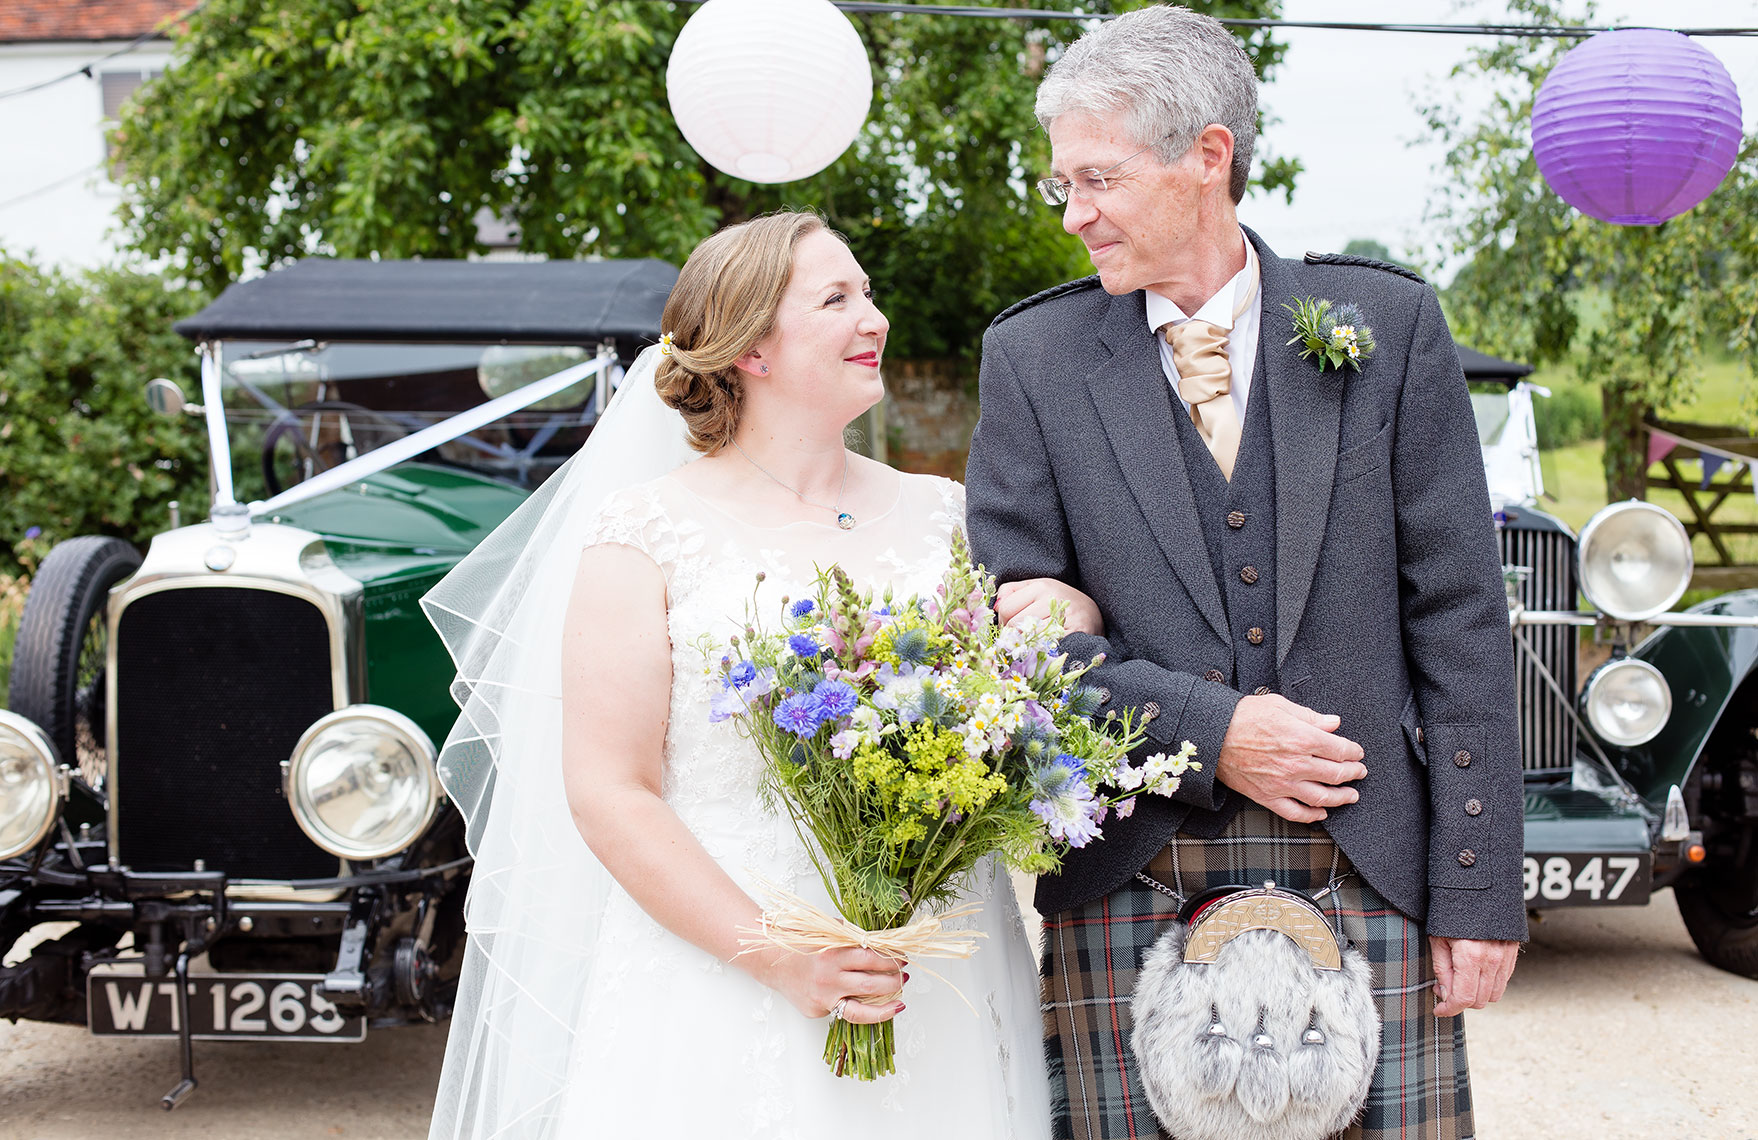 Happy smiling bride in white holding bouquet of flowers and making eye contact with farther in a kilt